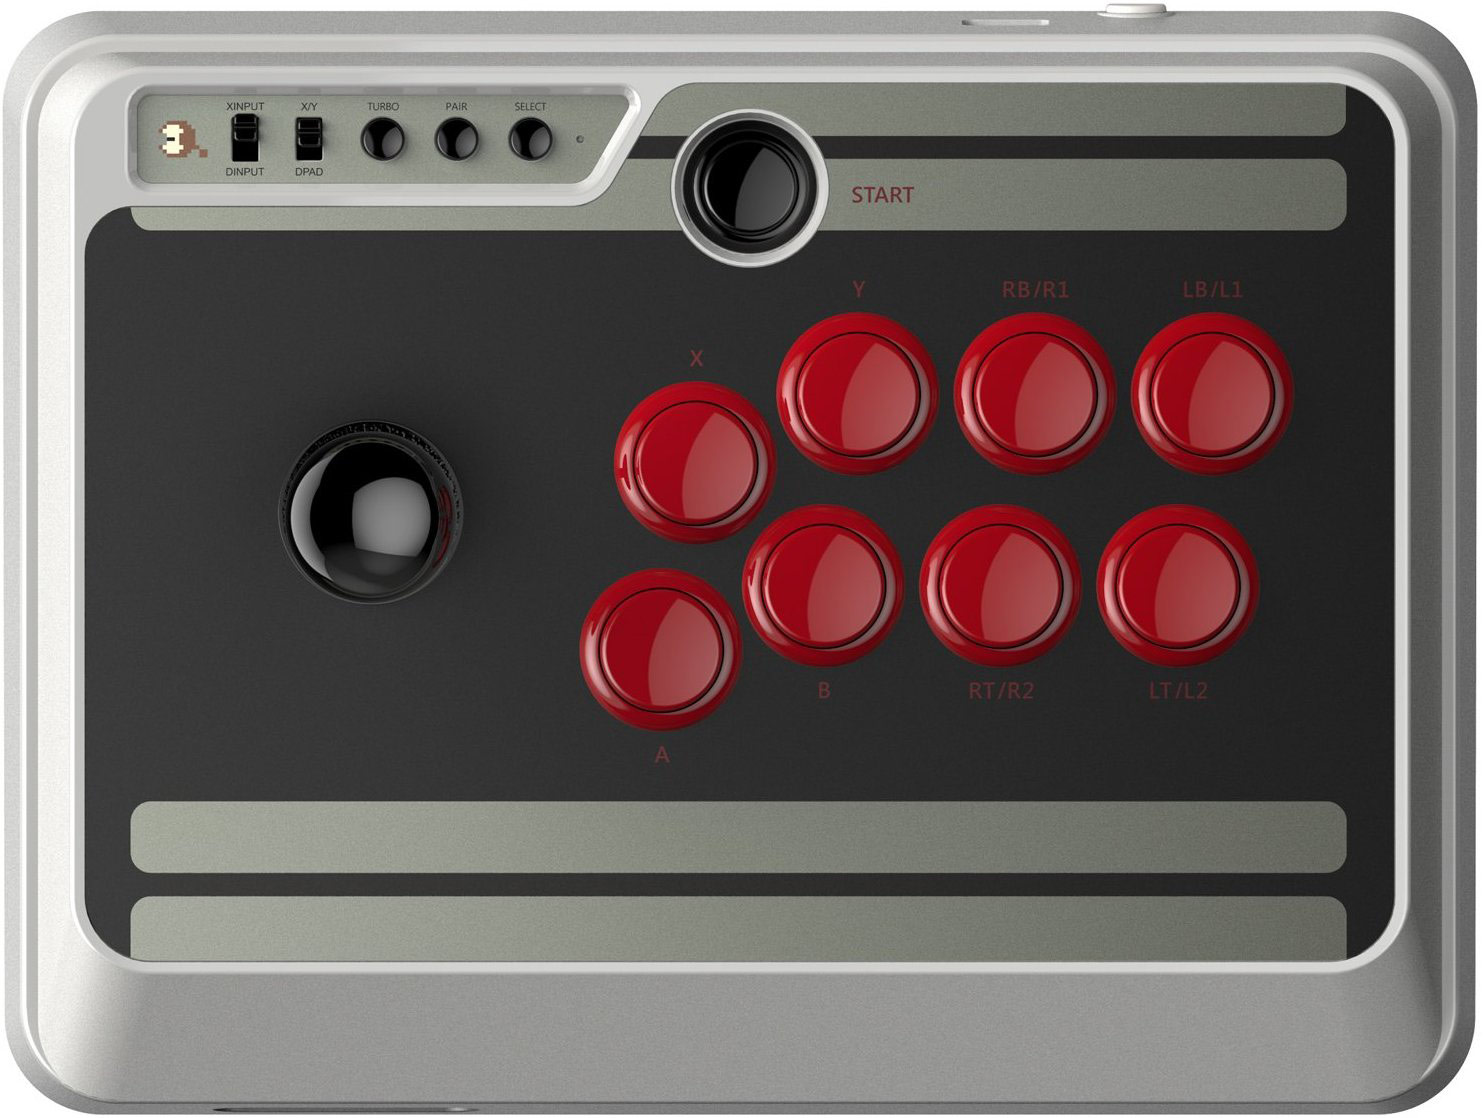 8Bitdo NES30 Arcade Stick 6 out of 11 image gallery